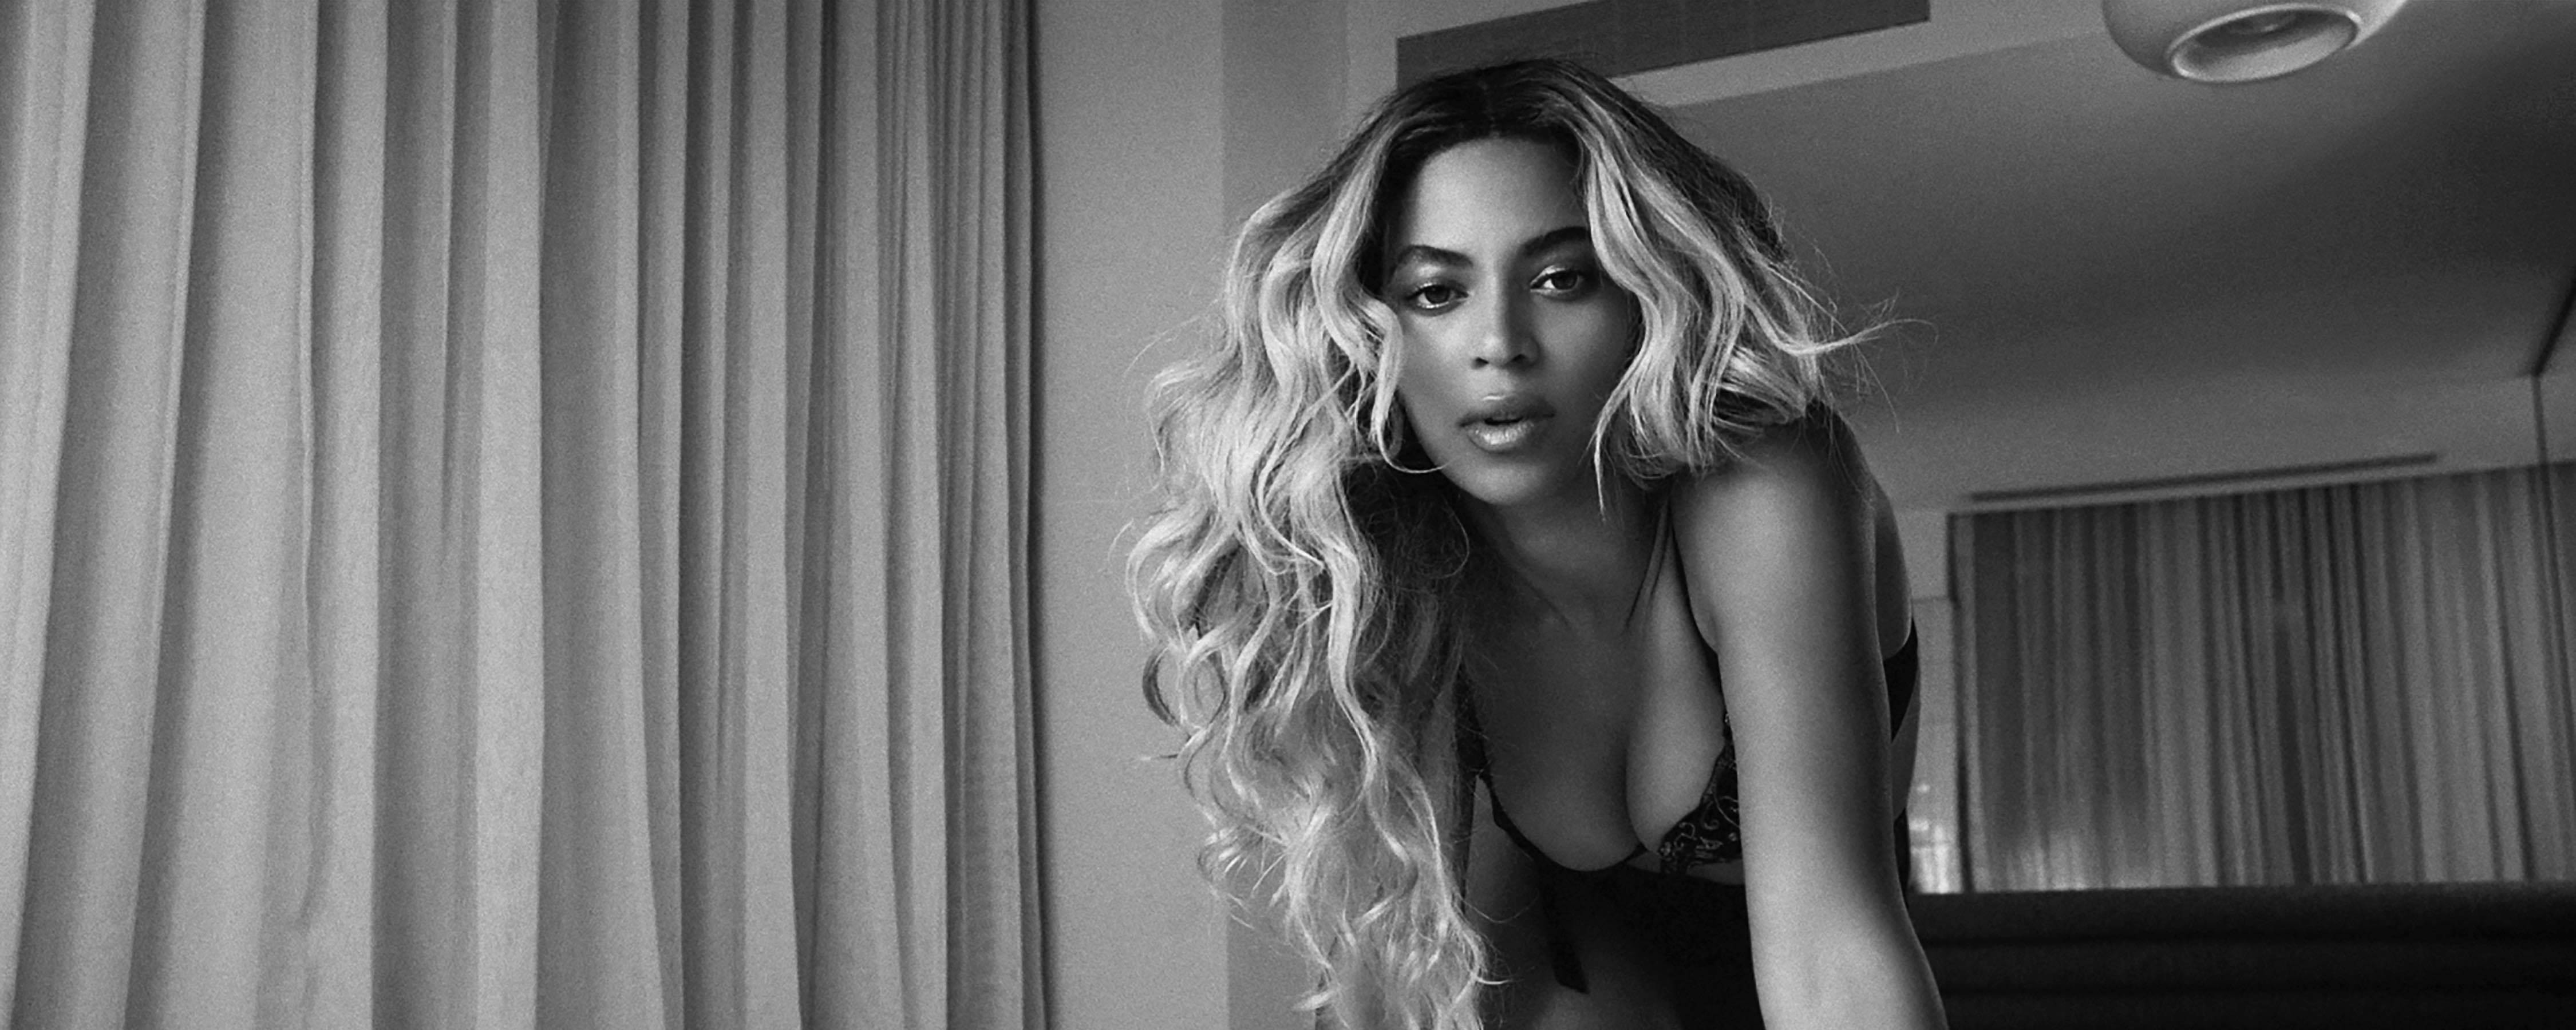 beyoncé teases us with new tracks